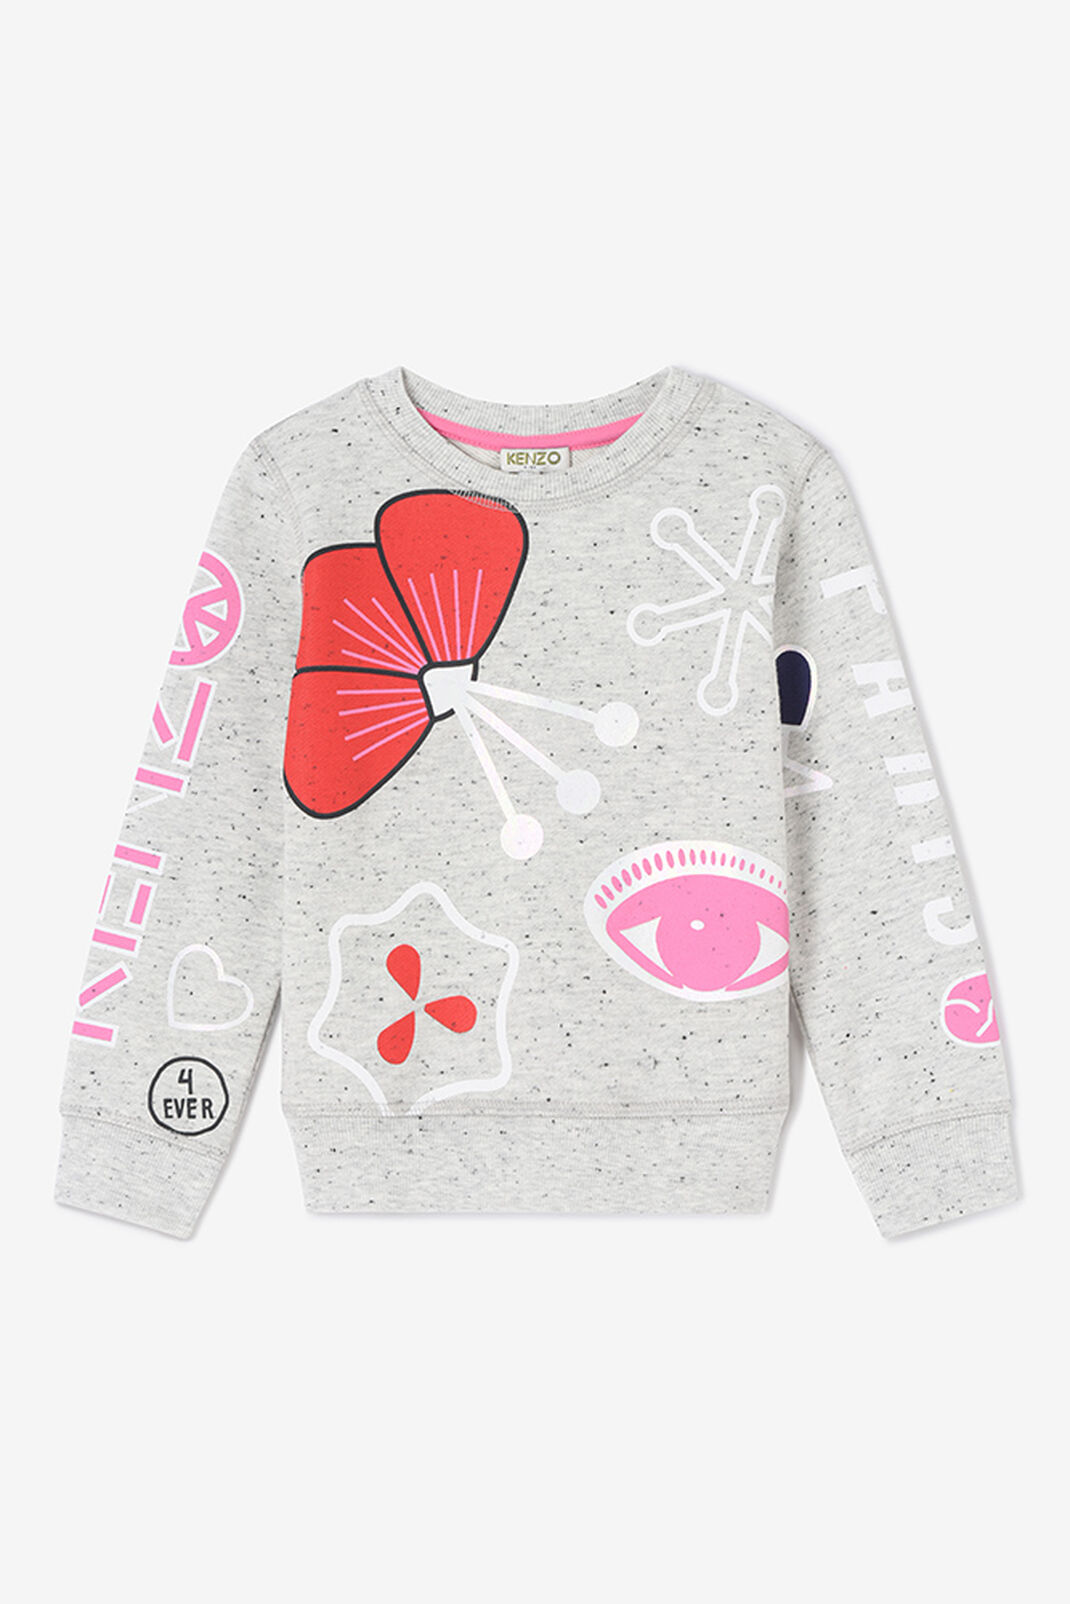 DOVE GREY Tanami Flowers Sweatshirt for women KENZO